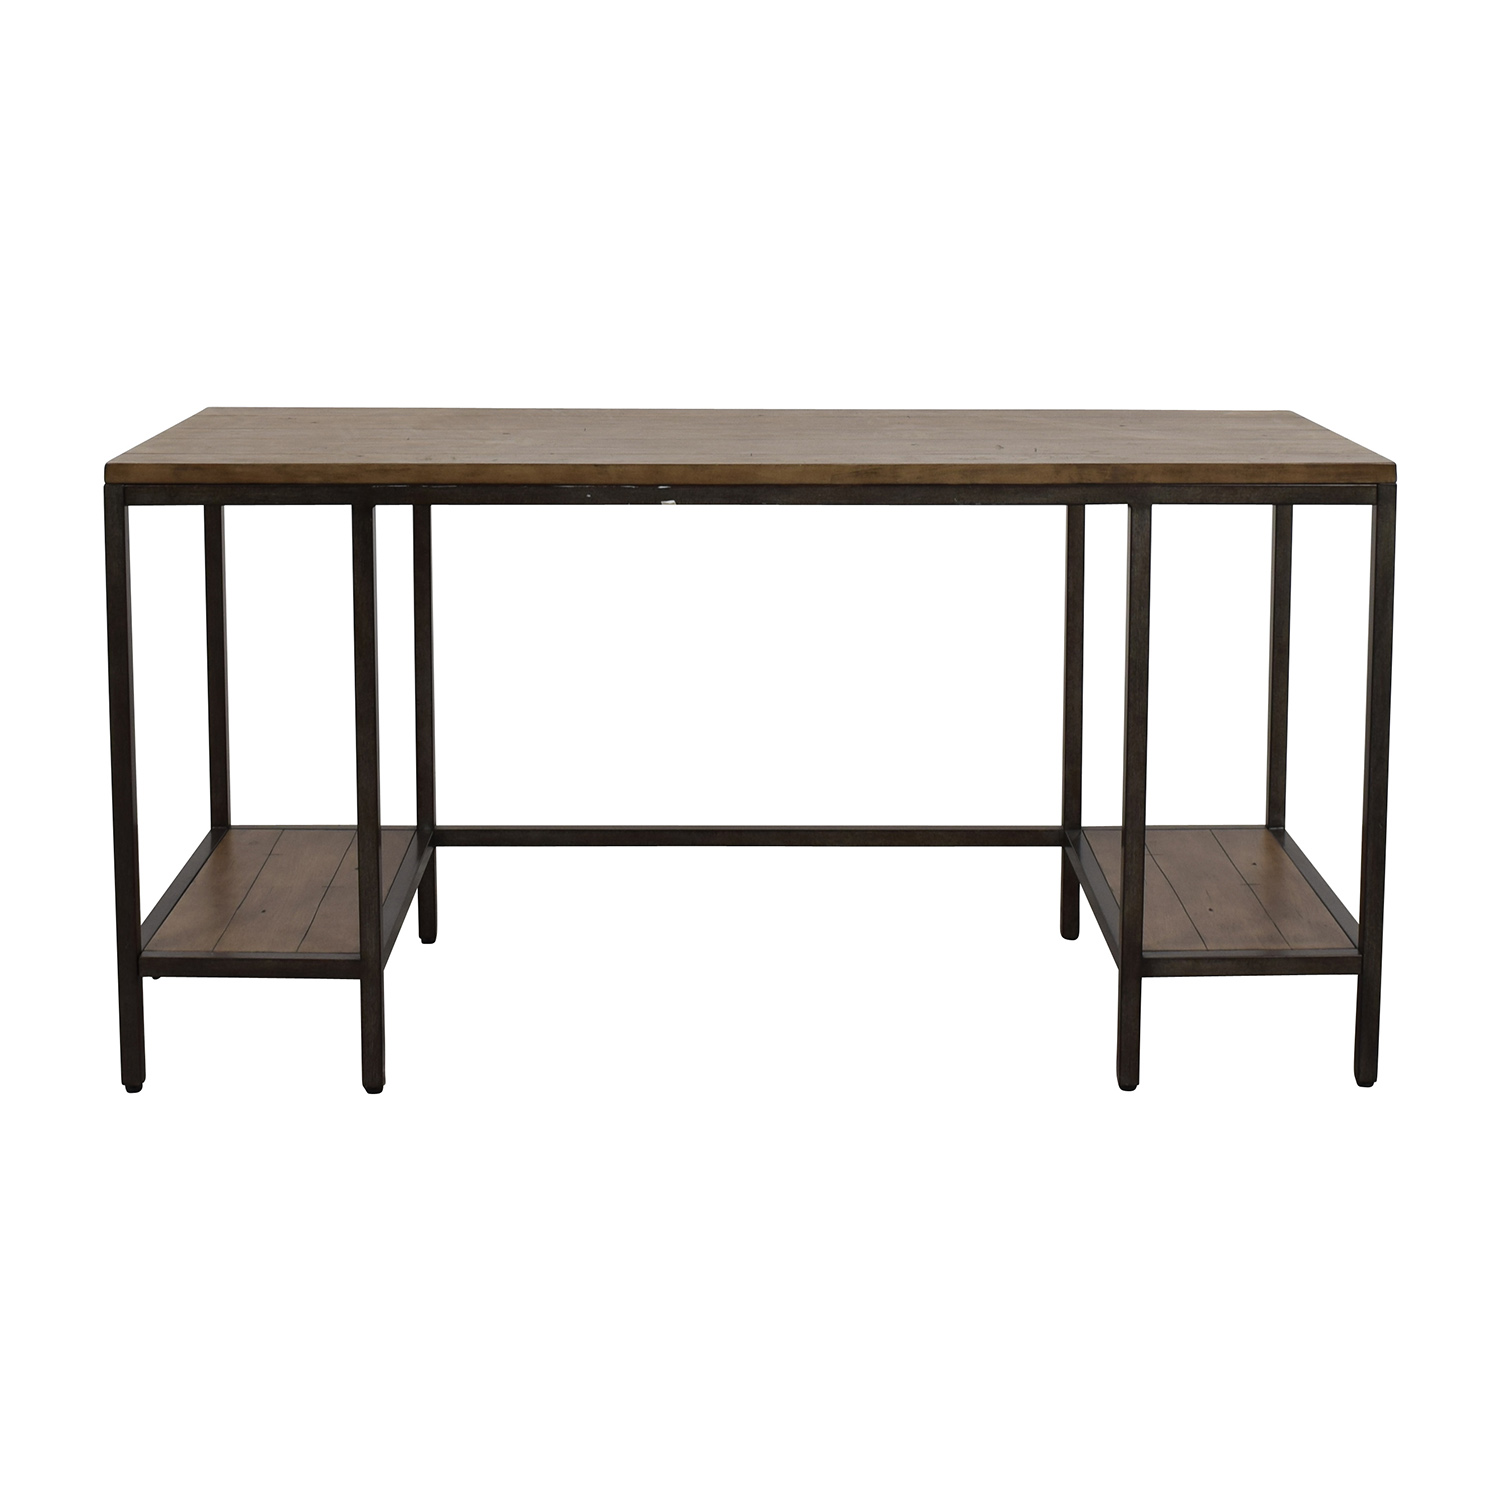 Ballard Designs Durham Desk Dimensions